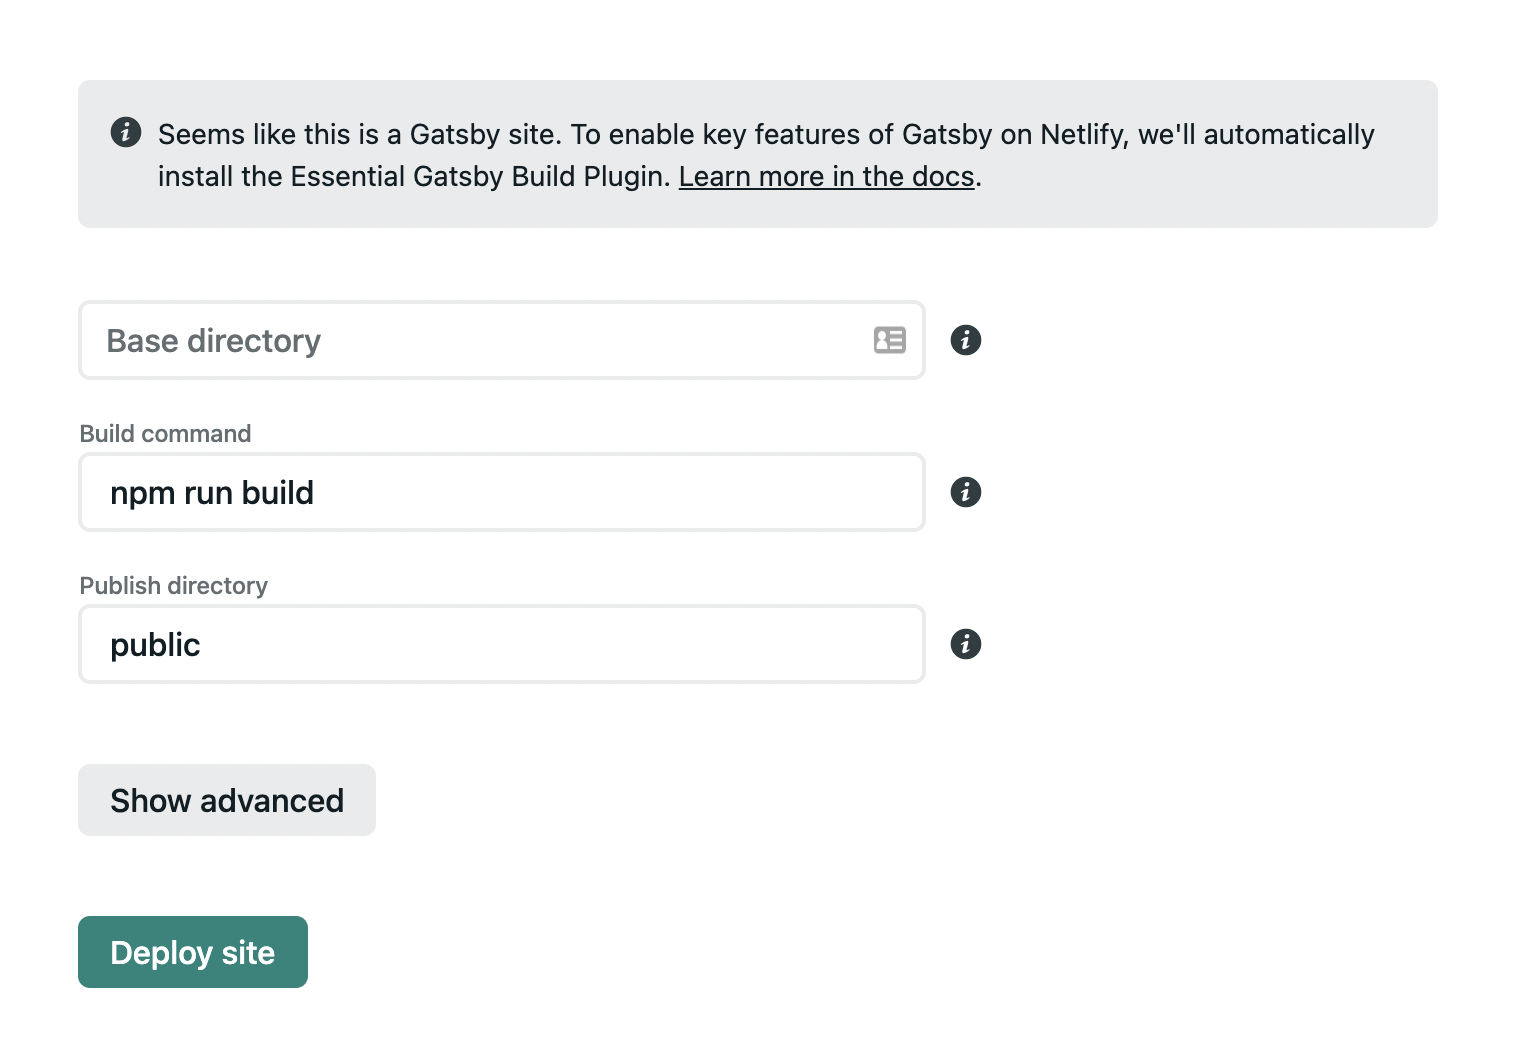 Screenshot of Netlify app reads: Seems like this is a Gatsby site. To enable key features of Gatsby on Netlify, we'll automatically install the Essential Gatsby Build Plugin.